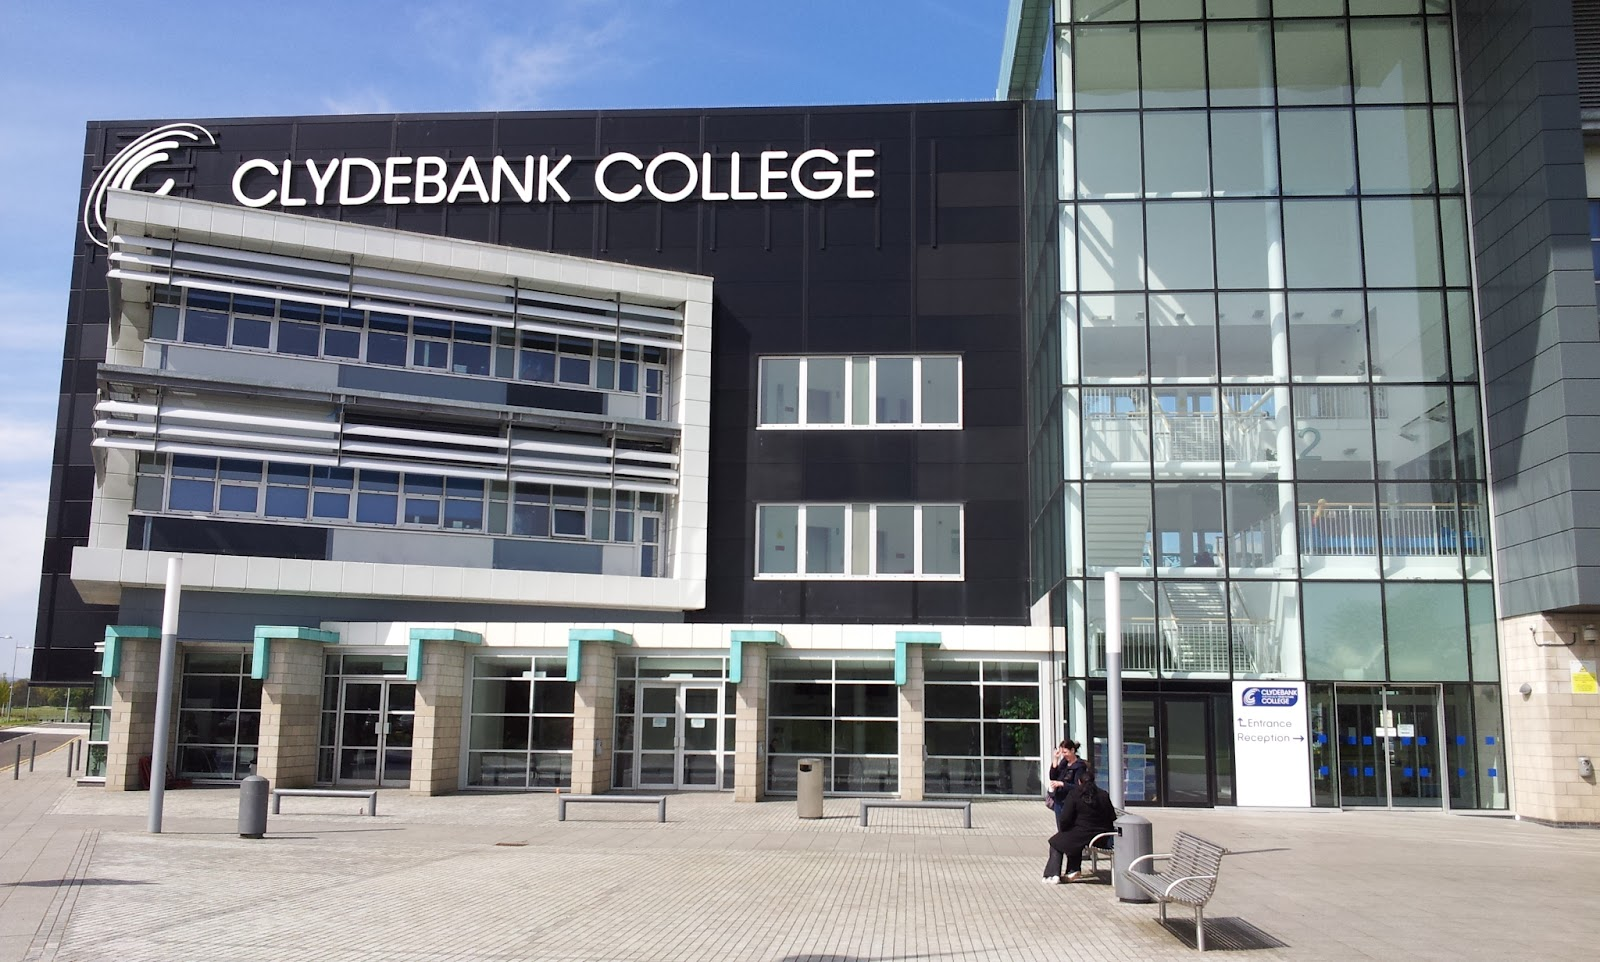 Clydebank College